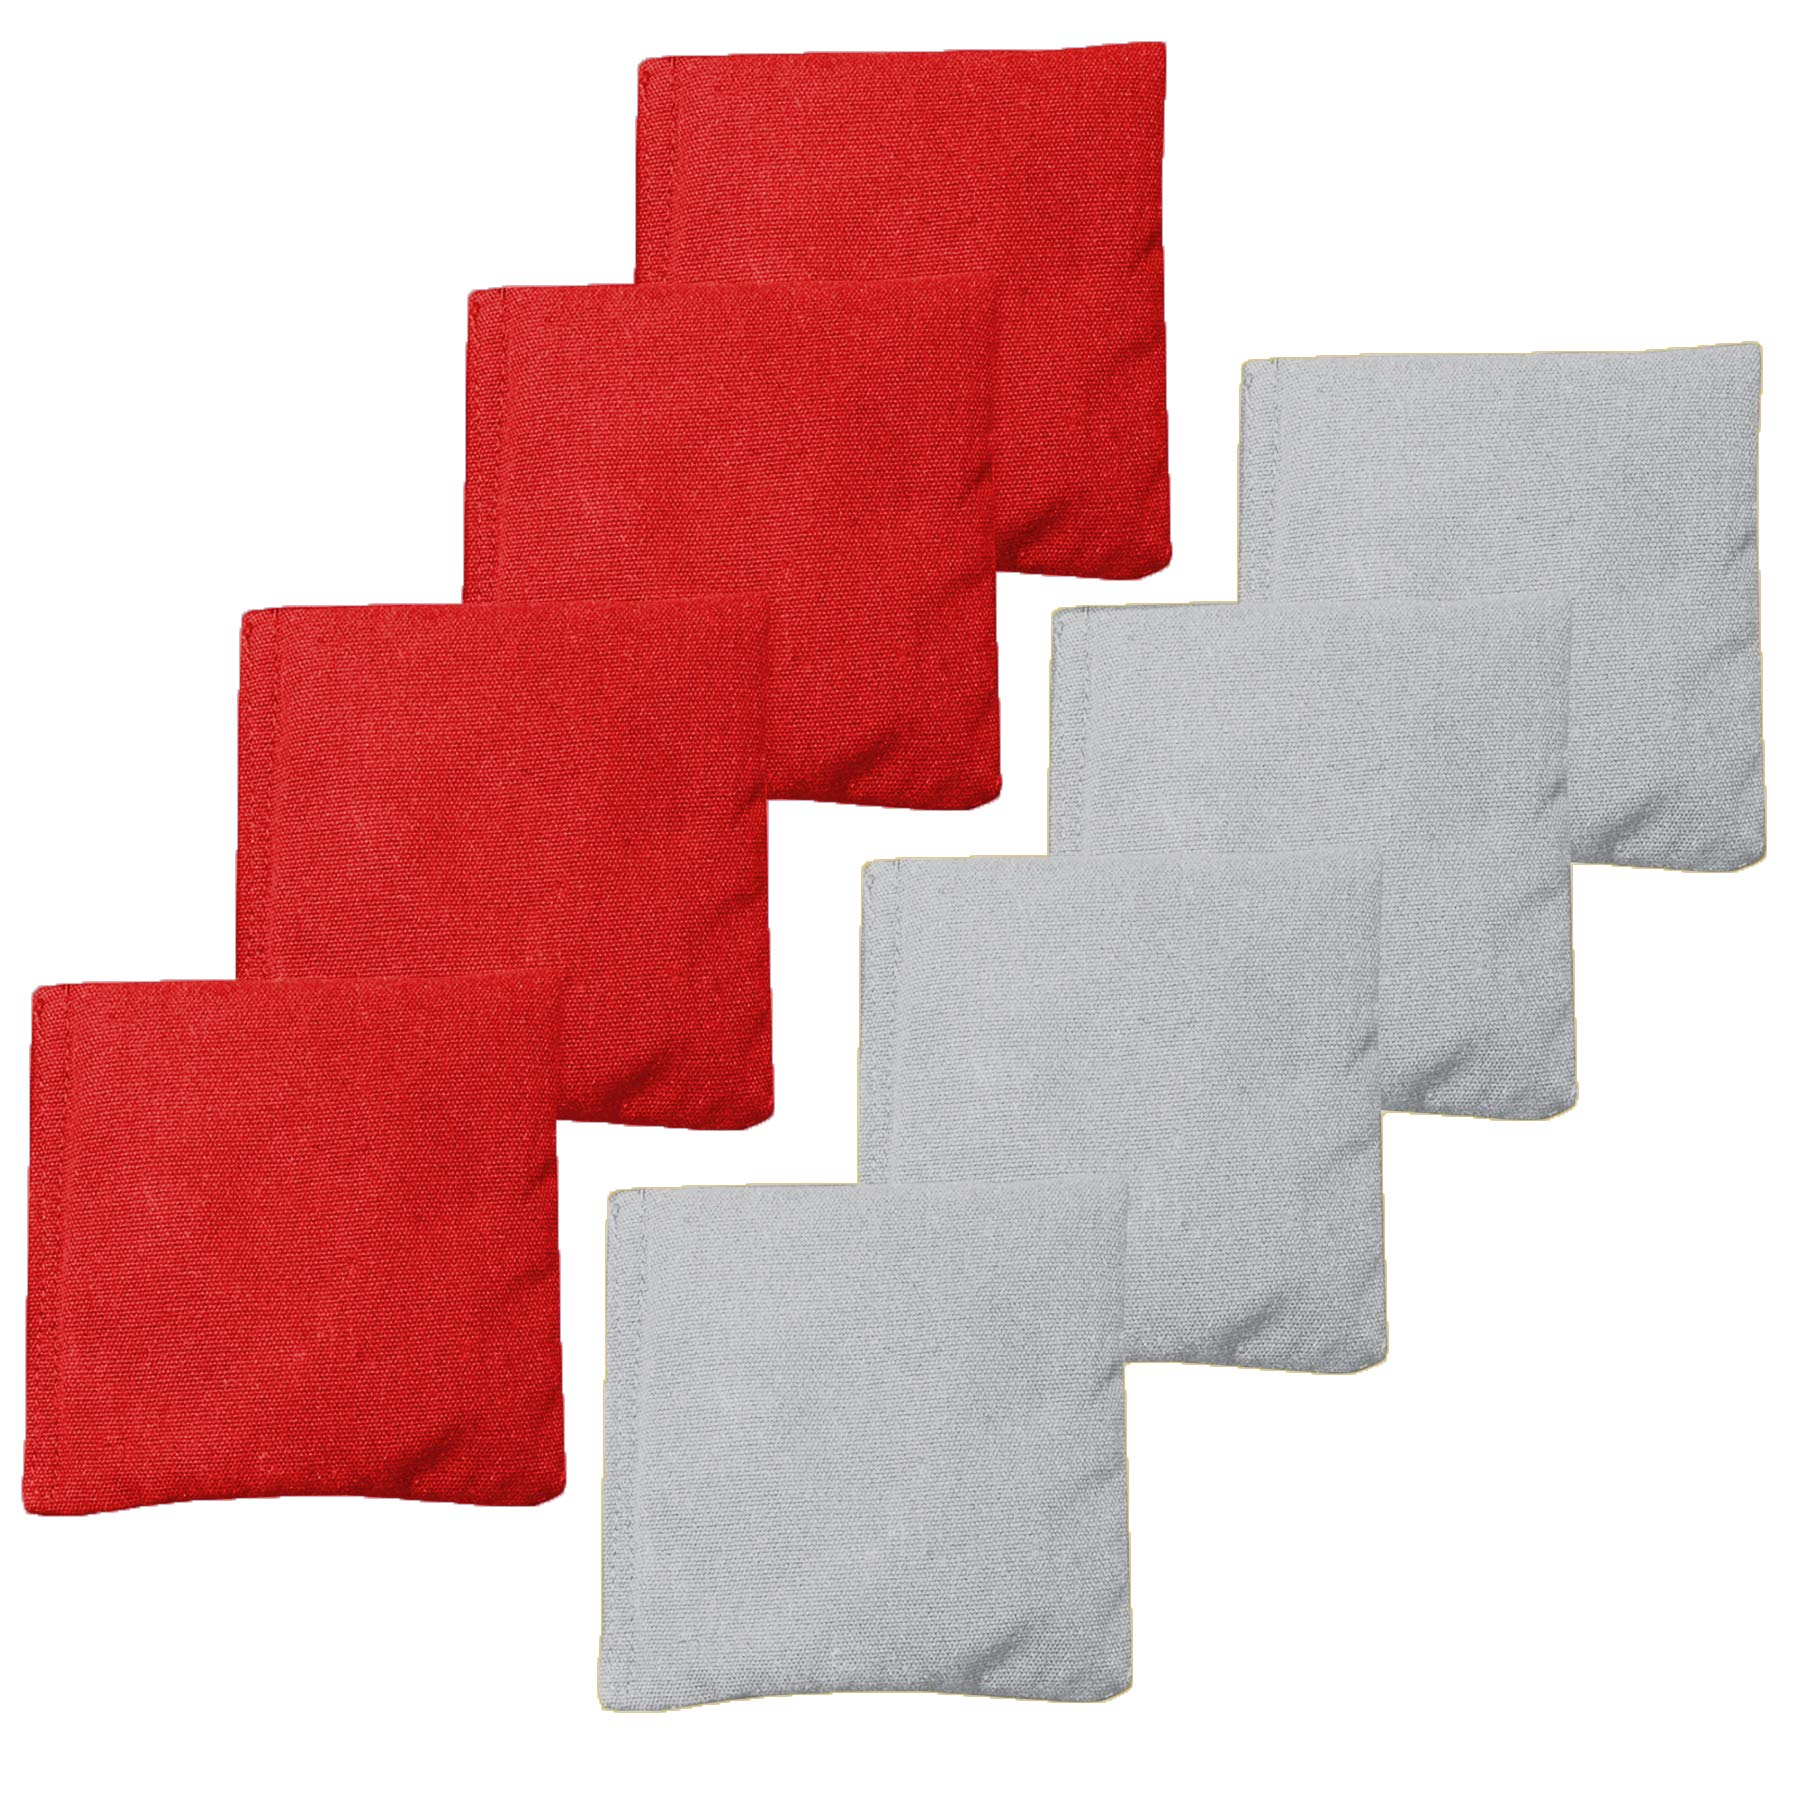 Weather Resistant Cornhole Bean Bags Set of 8 - Duck Cloth - Regulation Size & Weight - Red and Gray